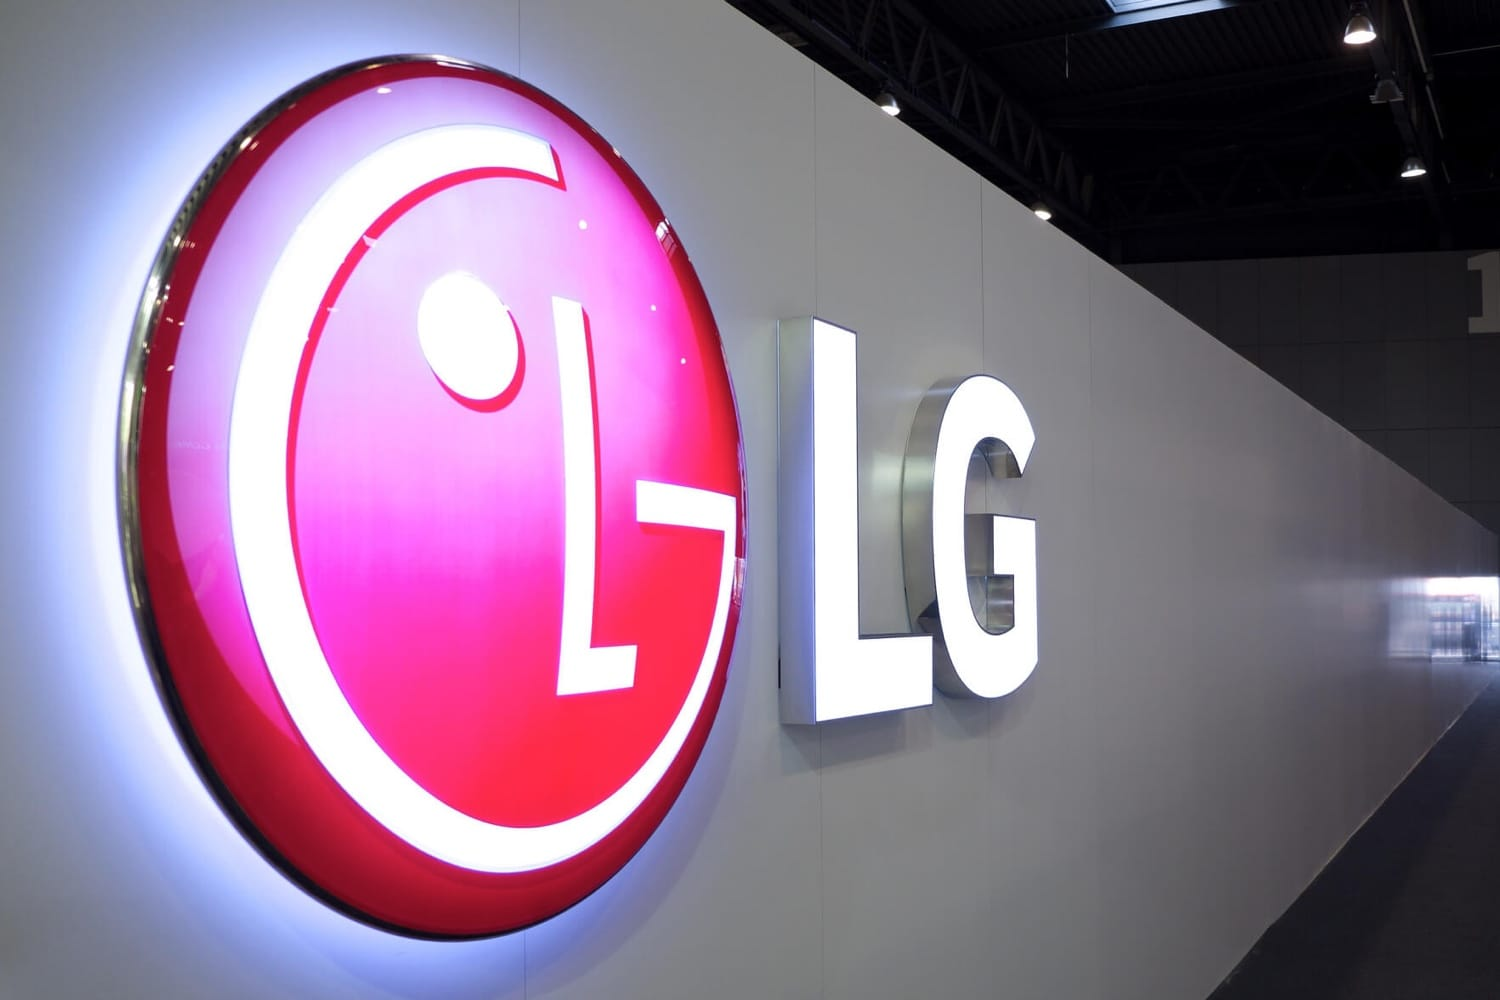 It seems the payment system LG finally arrives in the US